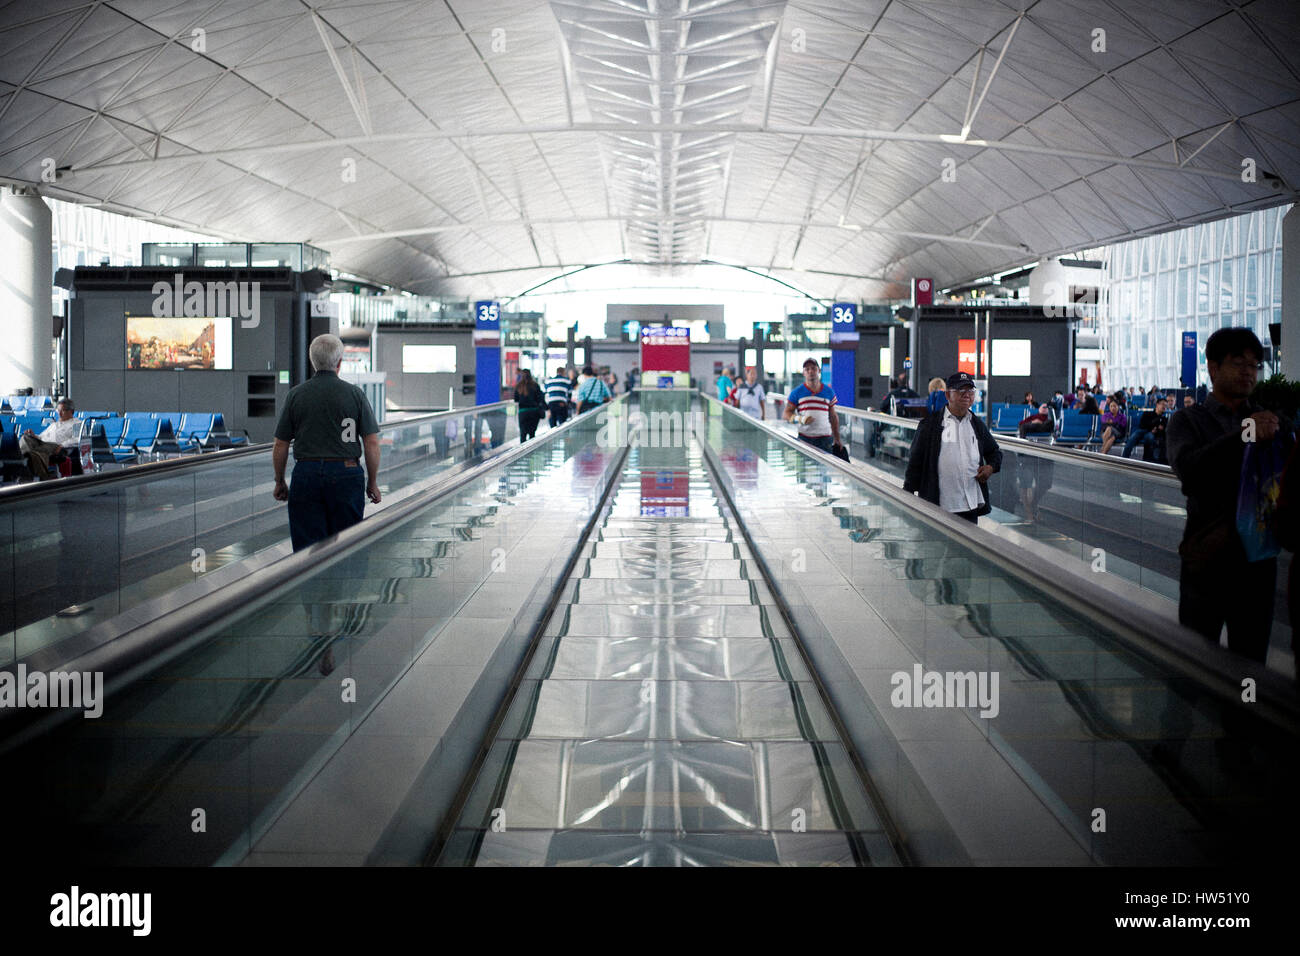 Hong Kong International Airport is one of the busiest airports in Asia. More than 100 airlines are operating from - Stock Image